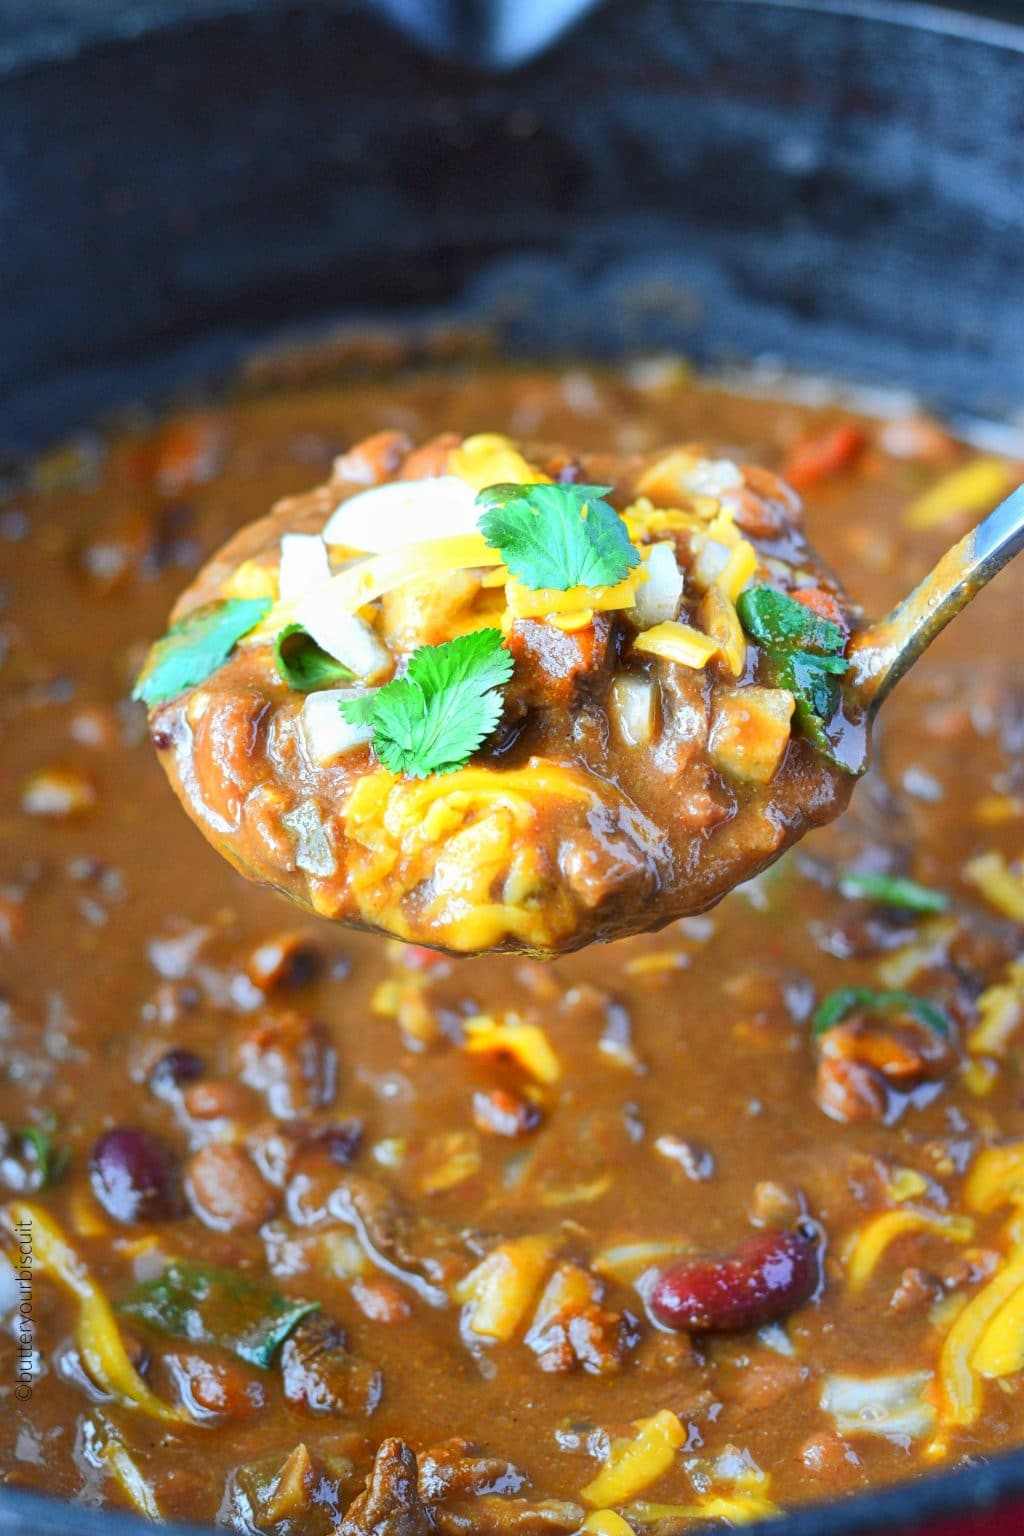 Ribeye steak chili in a pot with a ladle